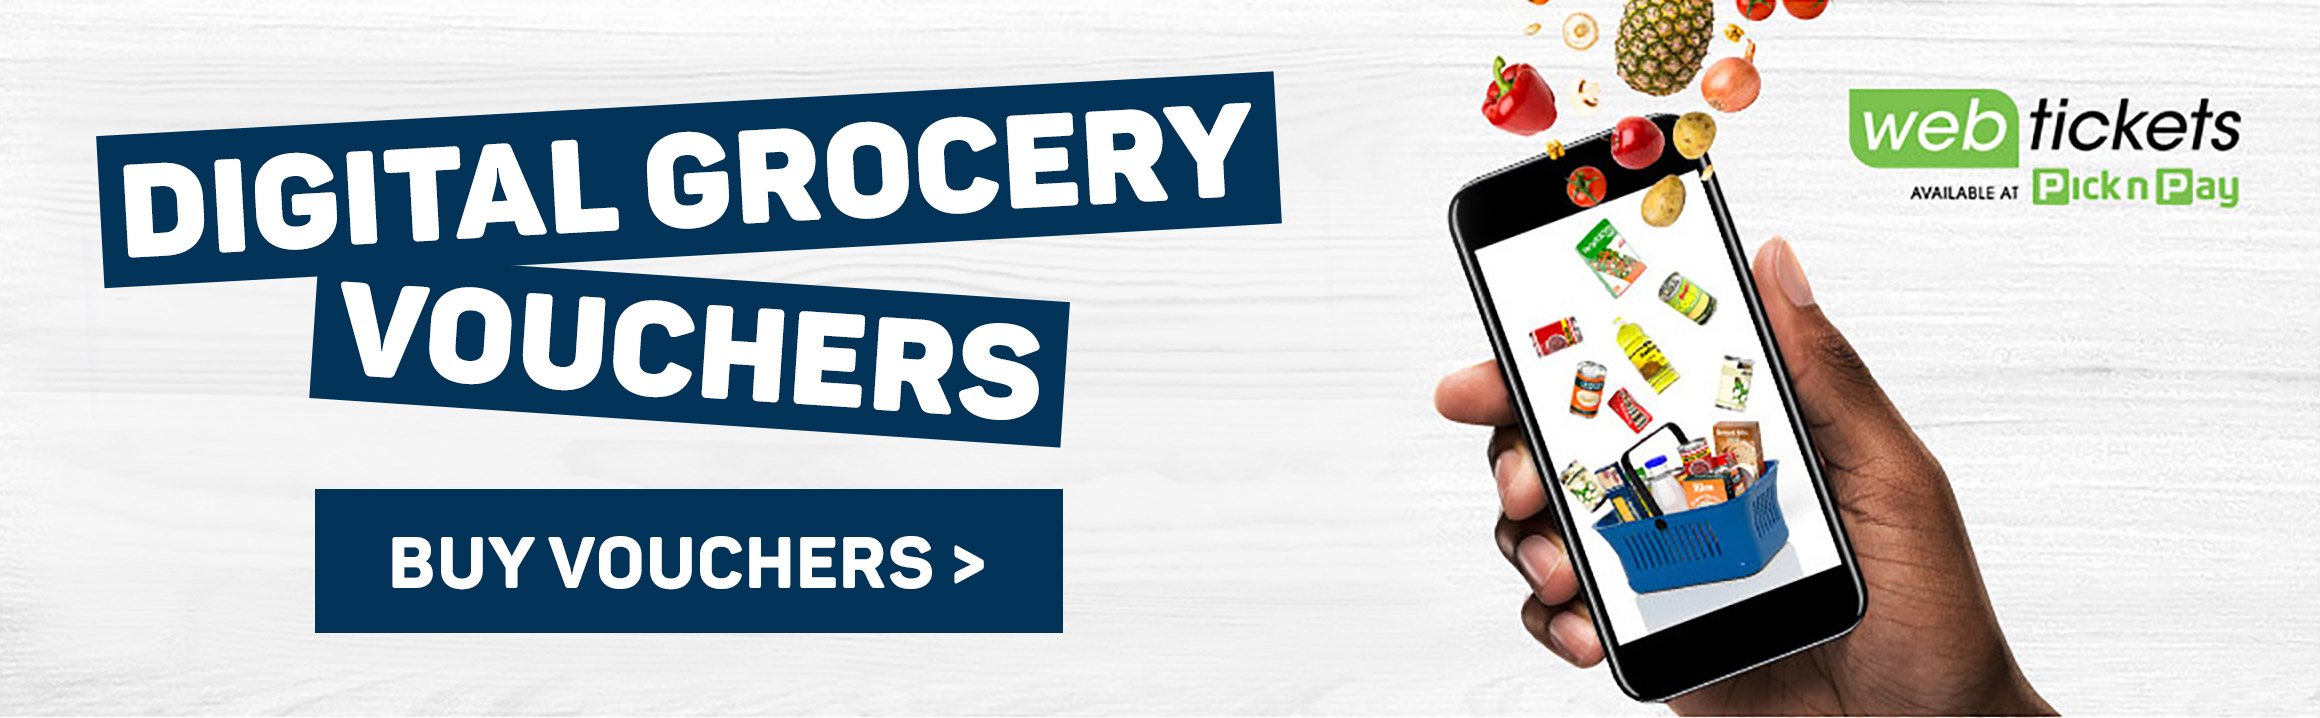 Digital grocery voucher. Buy vouchers